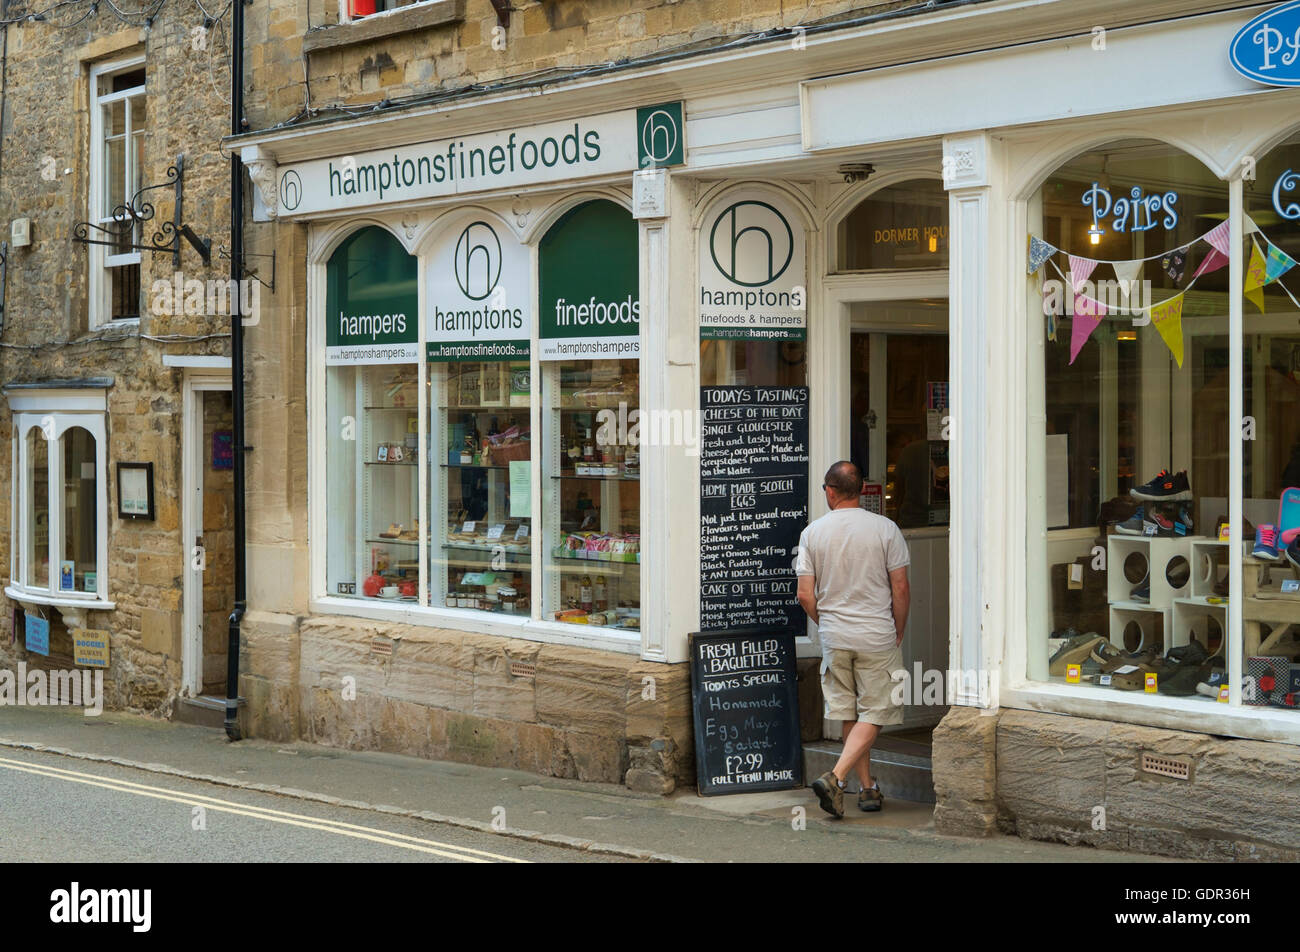 Stow-on-the-Wold a Cotswold town in Gloucestershire England UK Hamptons fine foods shop - Stock Image